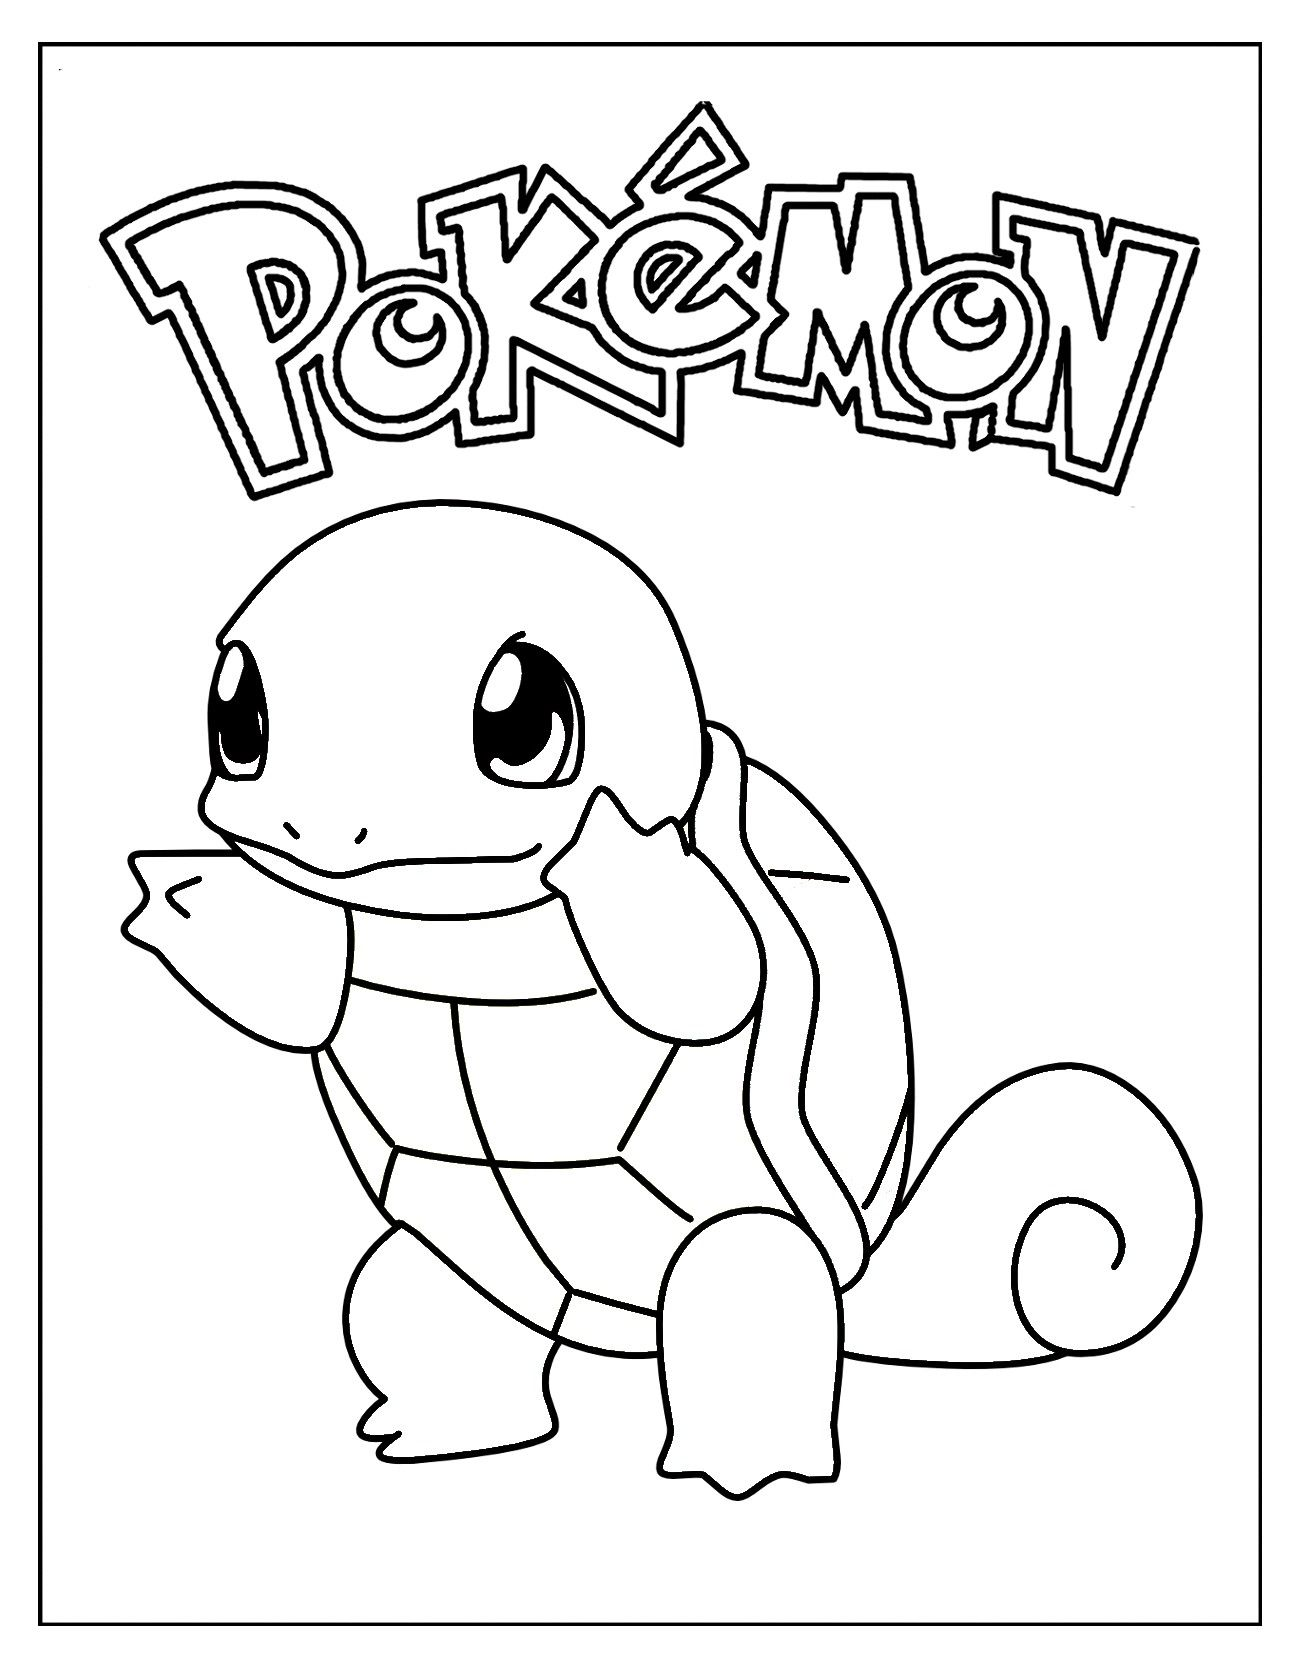 Pokemon Squirtle Coloring Pages Through The Thousand Photographs On The Web Regarding Pokemon Pokemon Coloring Pages Pokemon Coloring Pokemon Coloring Sheets